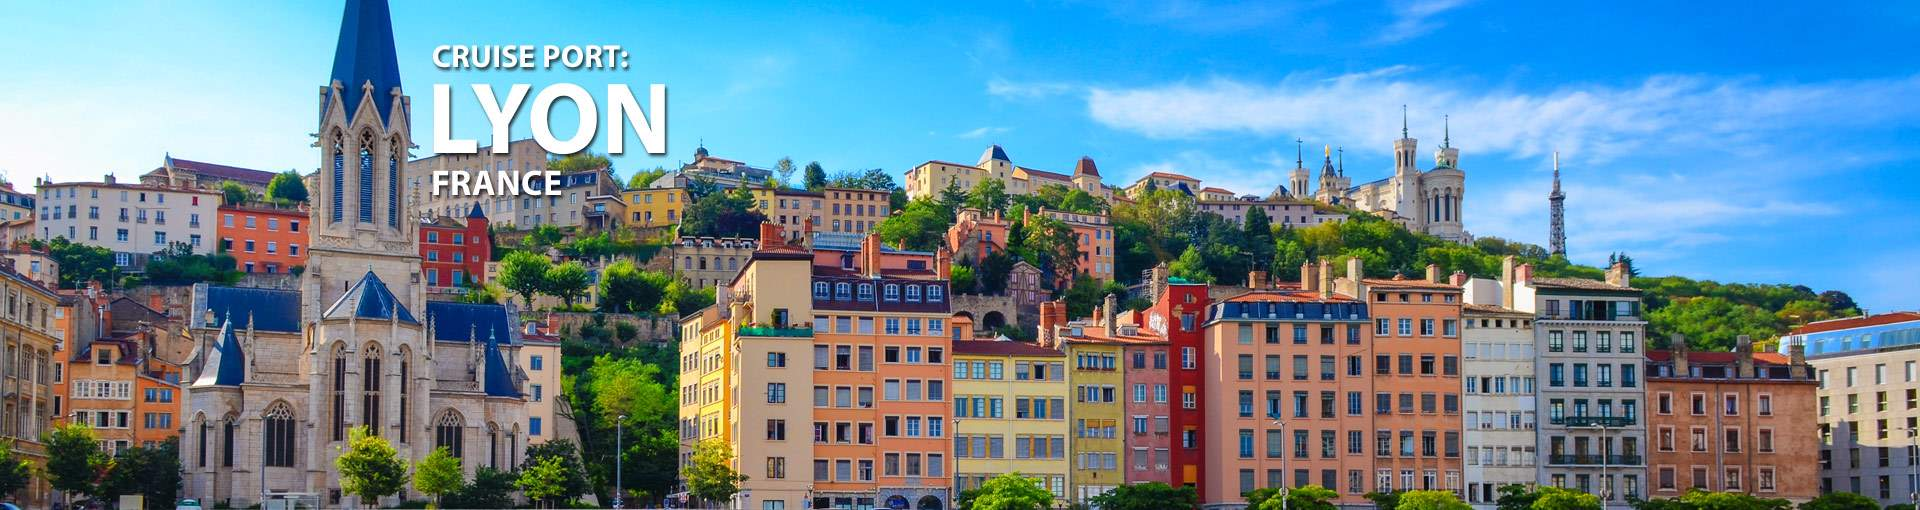 Cruises from Lyon, France